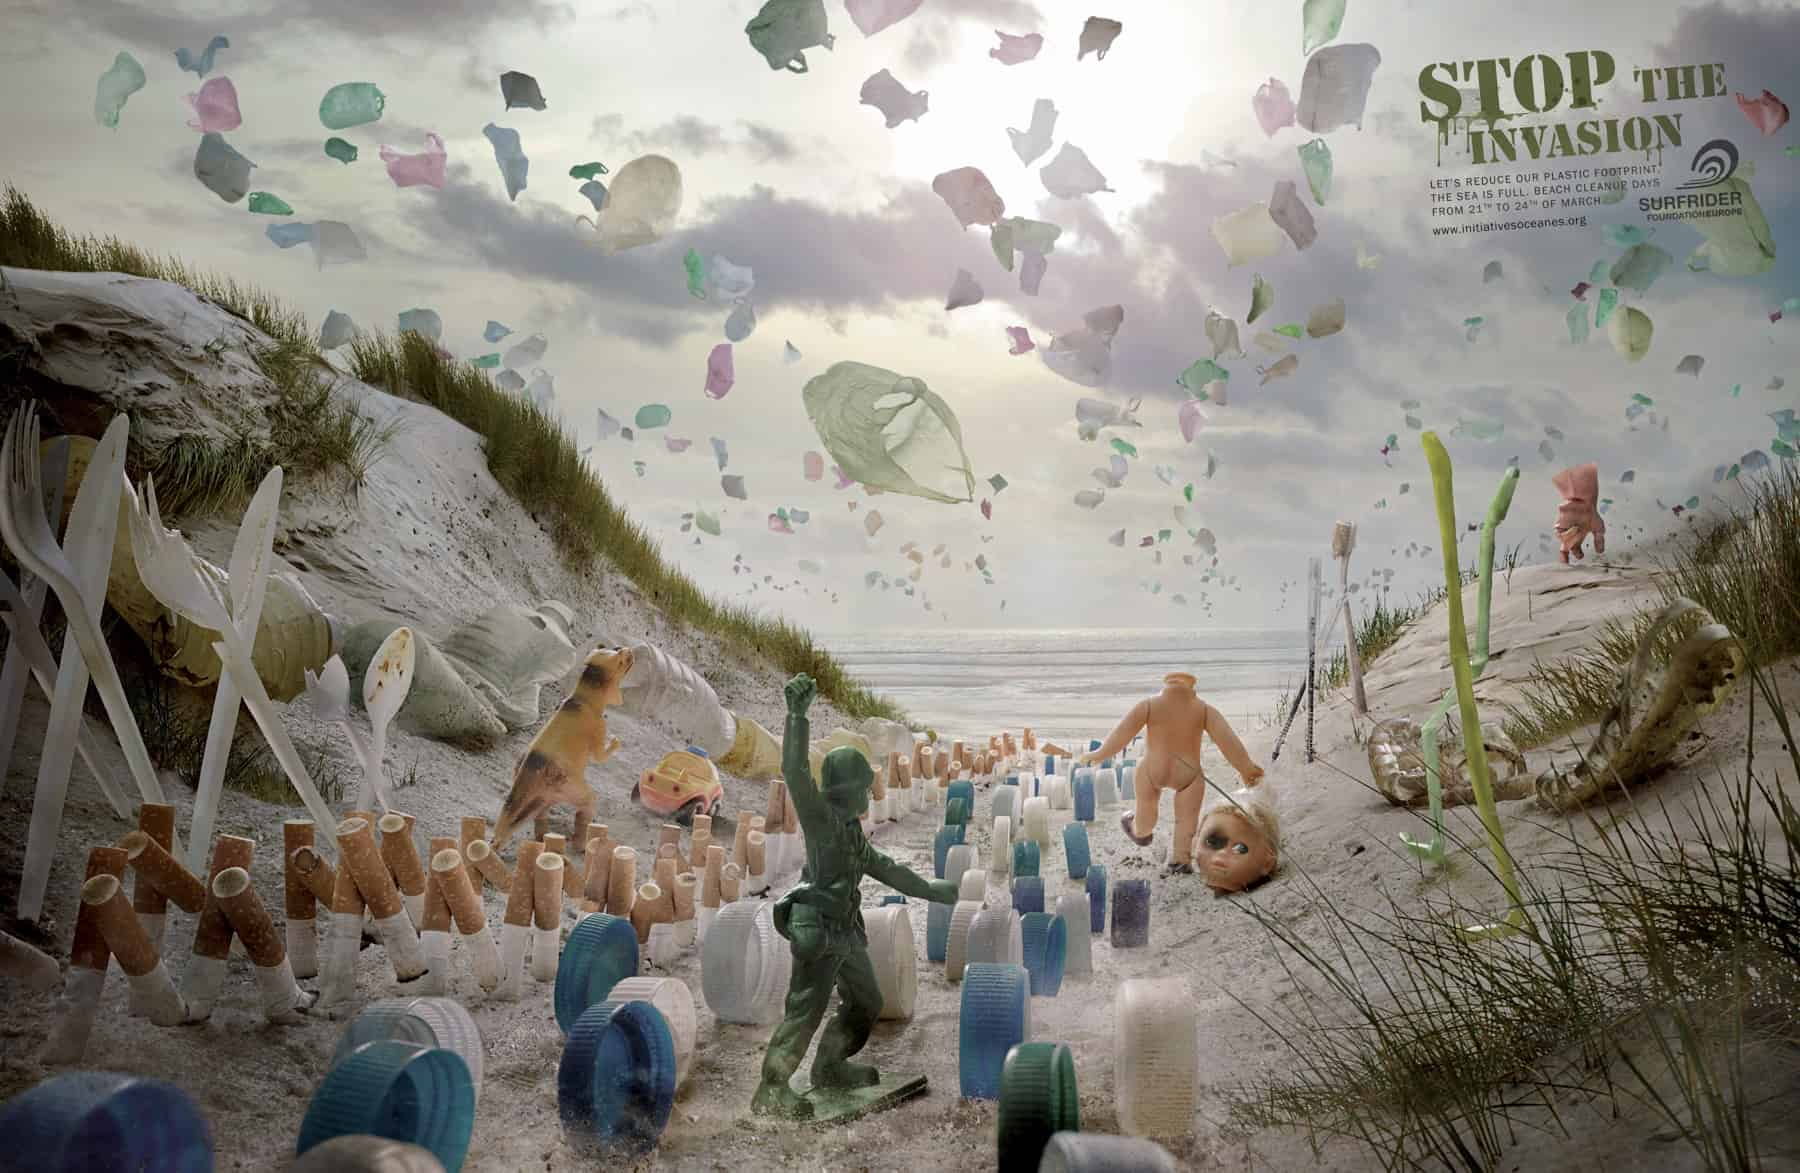 Pub Surfrider Foundation : invasion